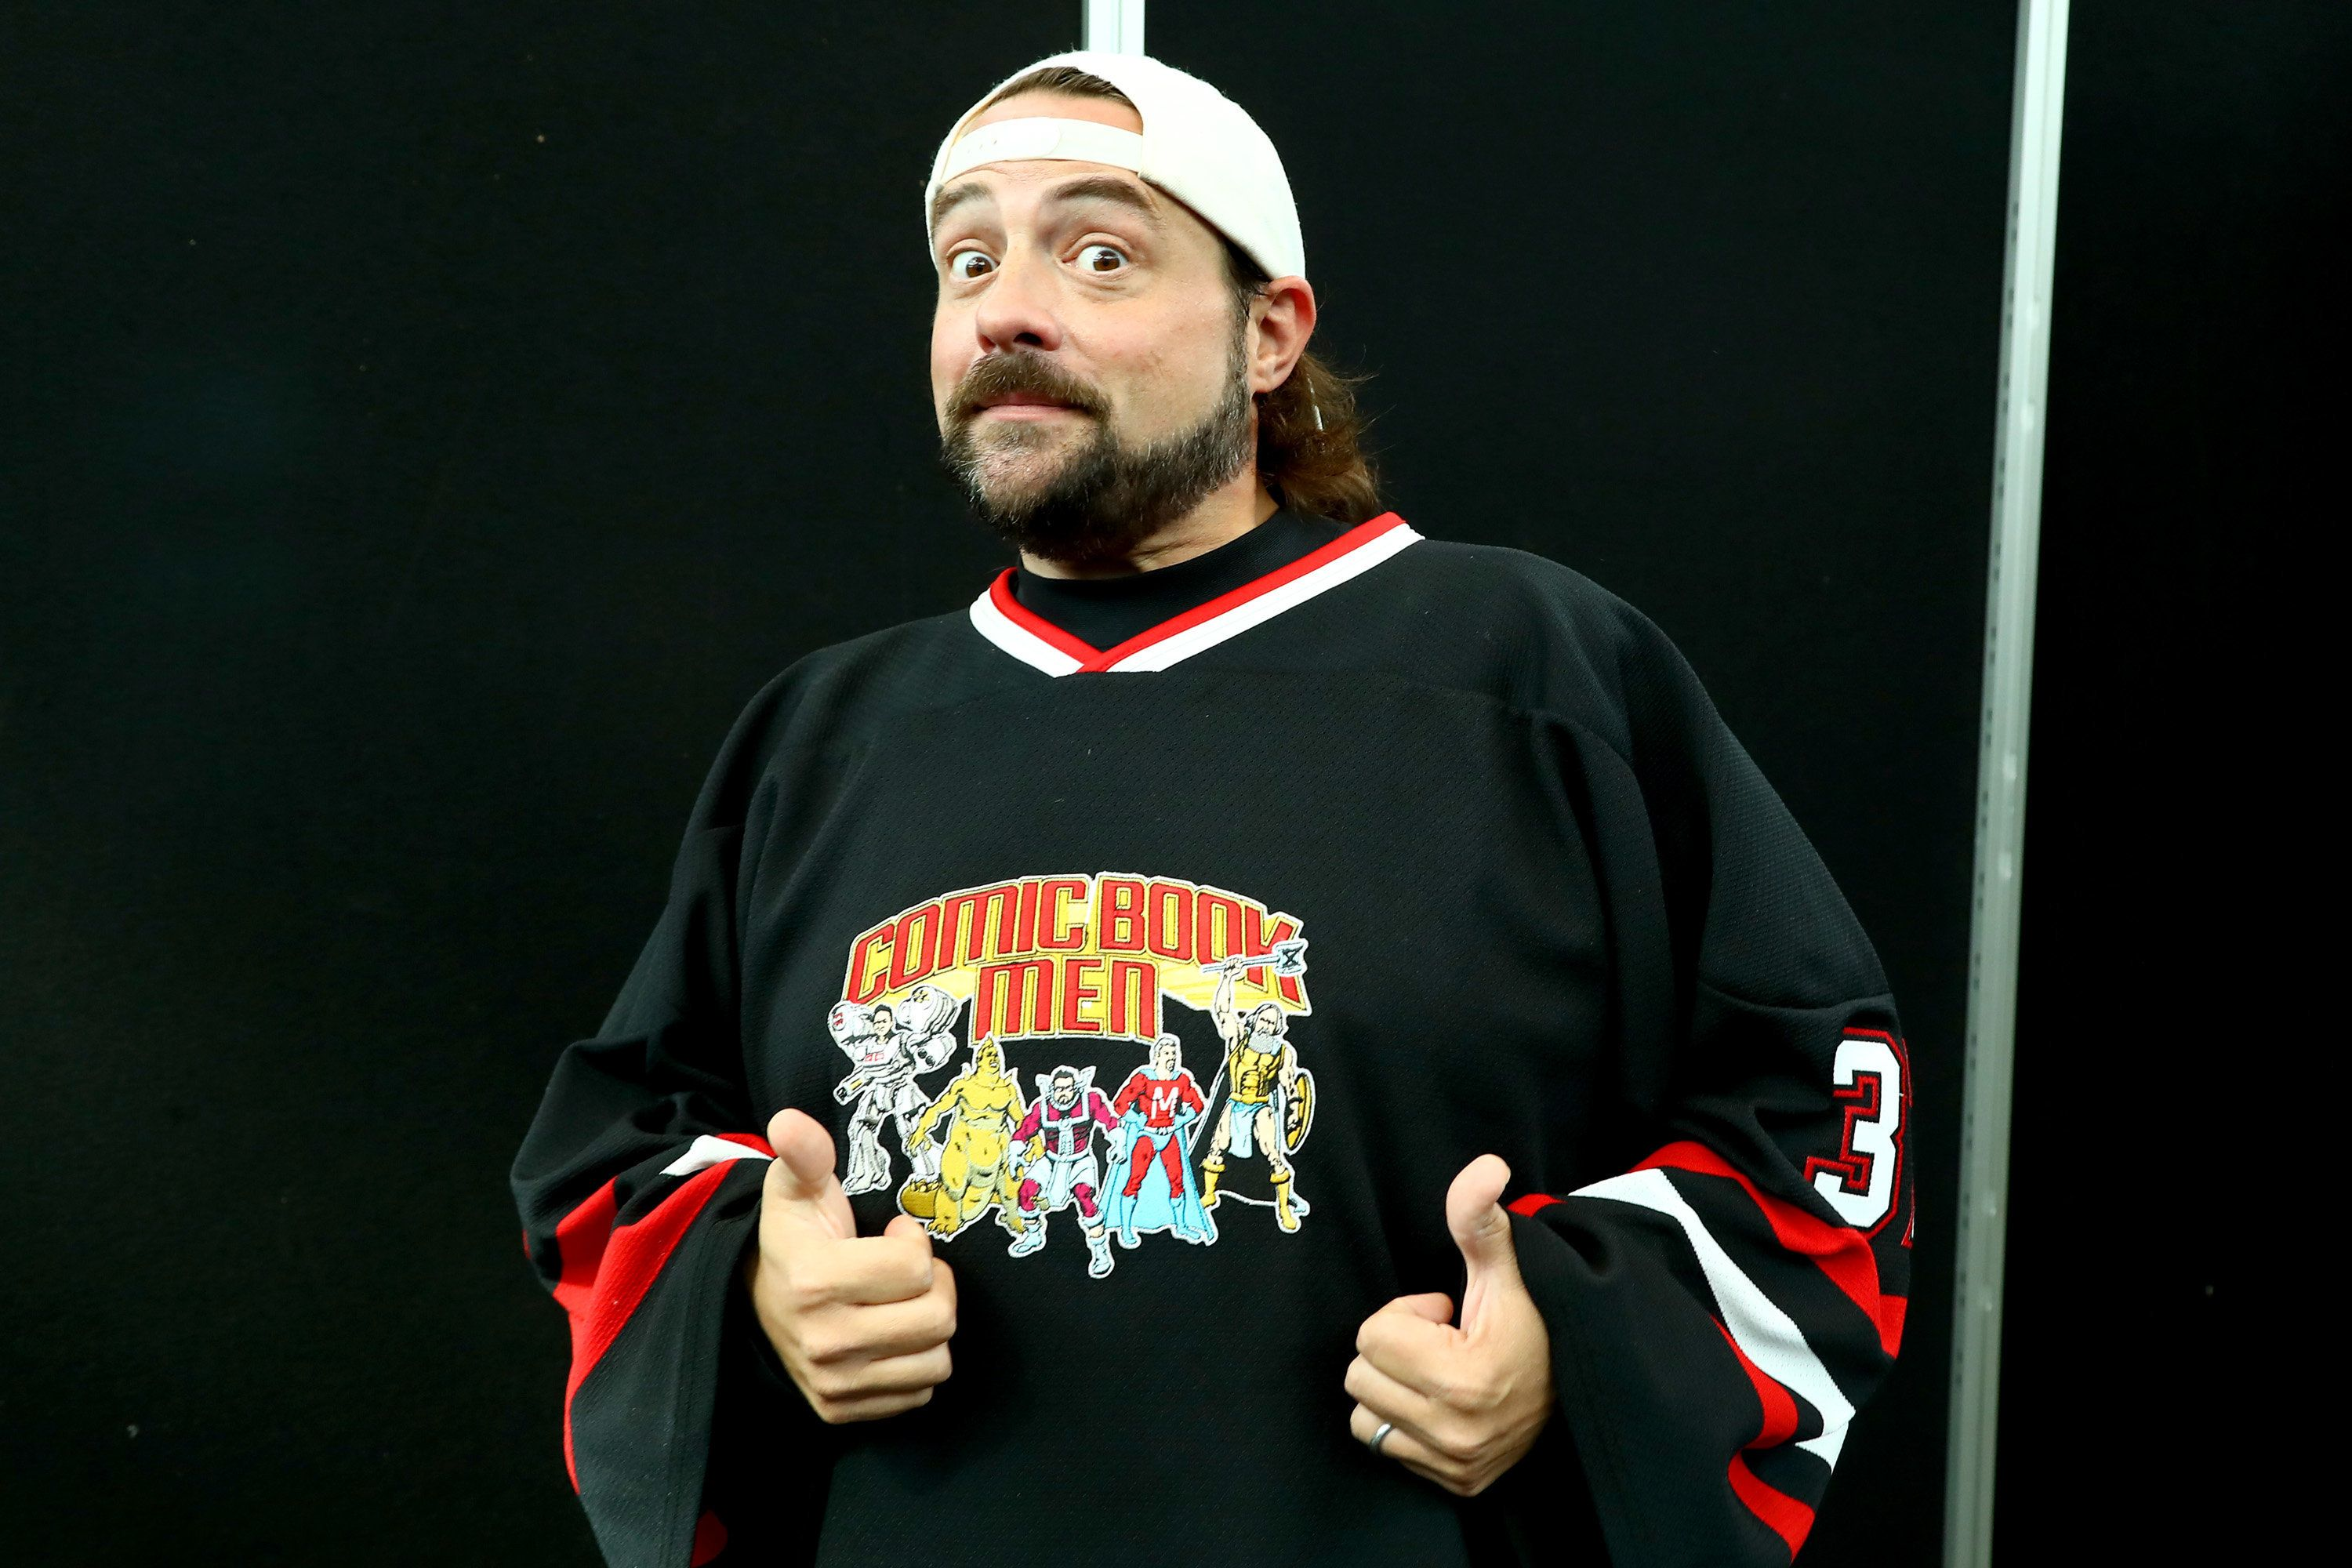 NEW YORK, NY - OCTOBER 05:  Director Kevin Smith attends 2017 New York Comic Con - Day 1 on October 5, 2017 in New York City.  (Photo by Astrid Stawiarz/Getty Images)